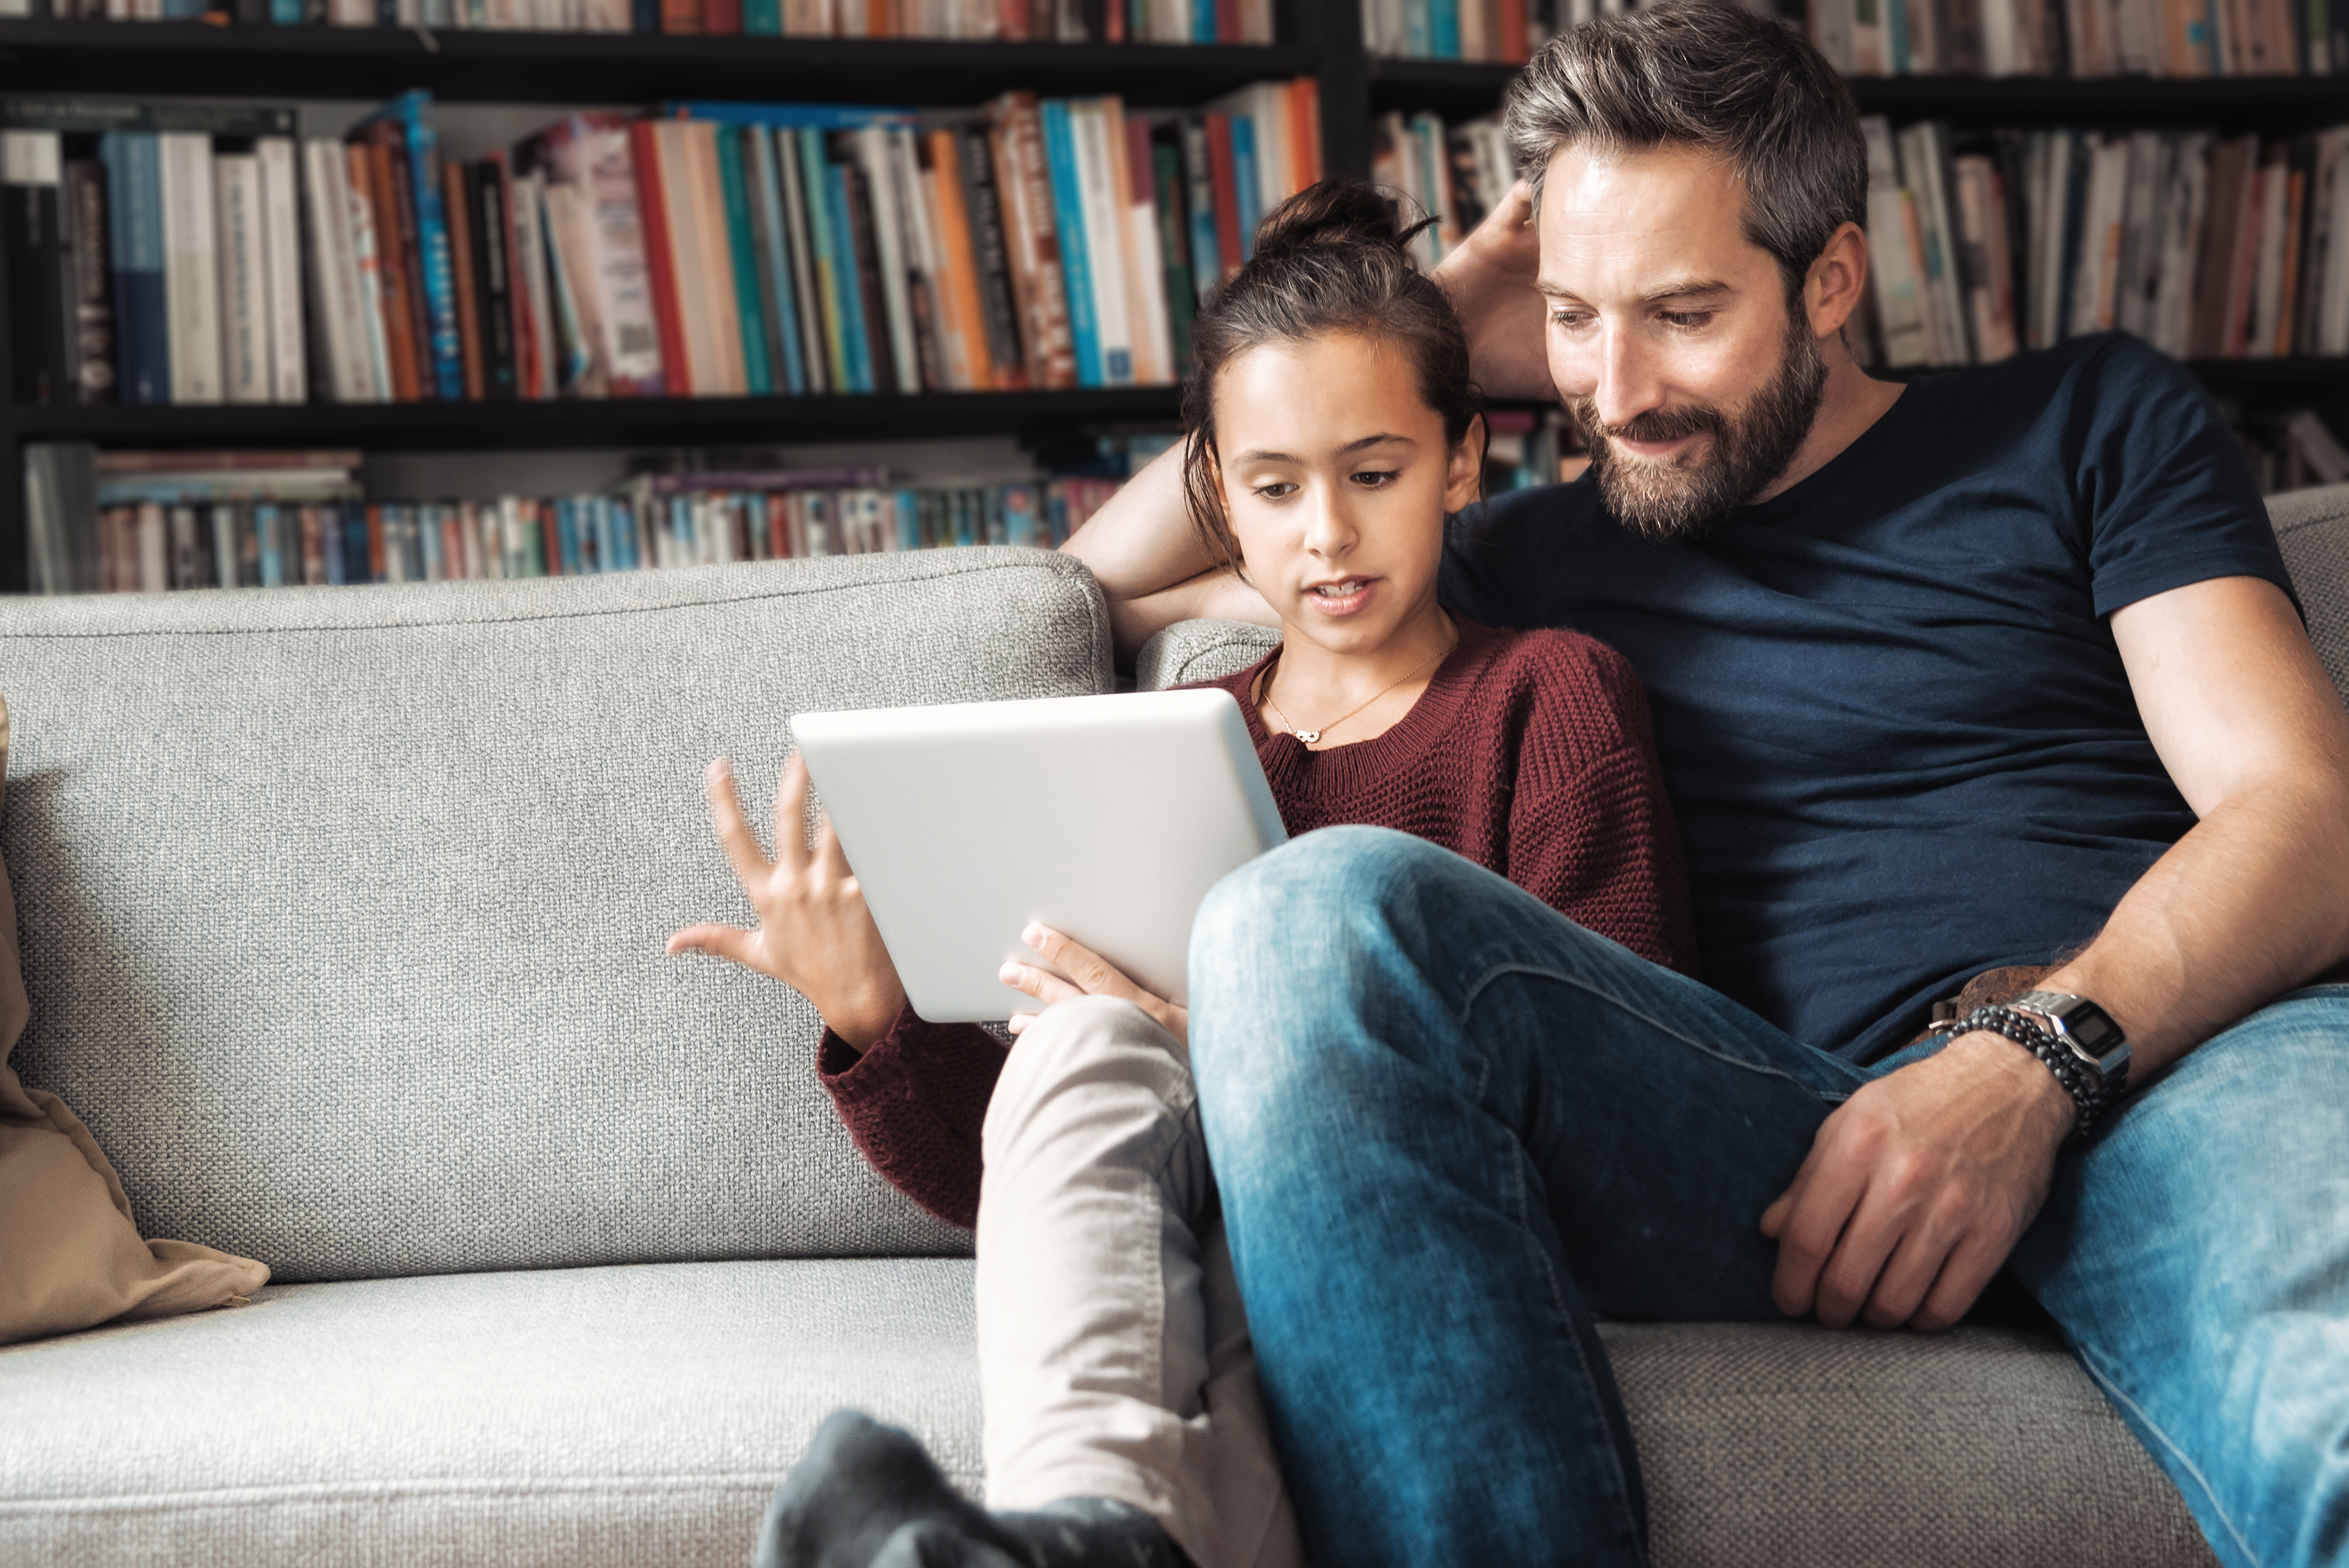 happy father and daughter having fun with digital tablet on couch